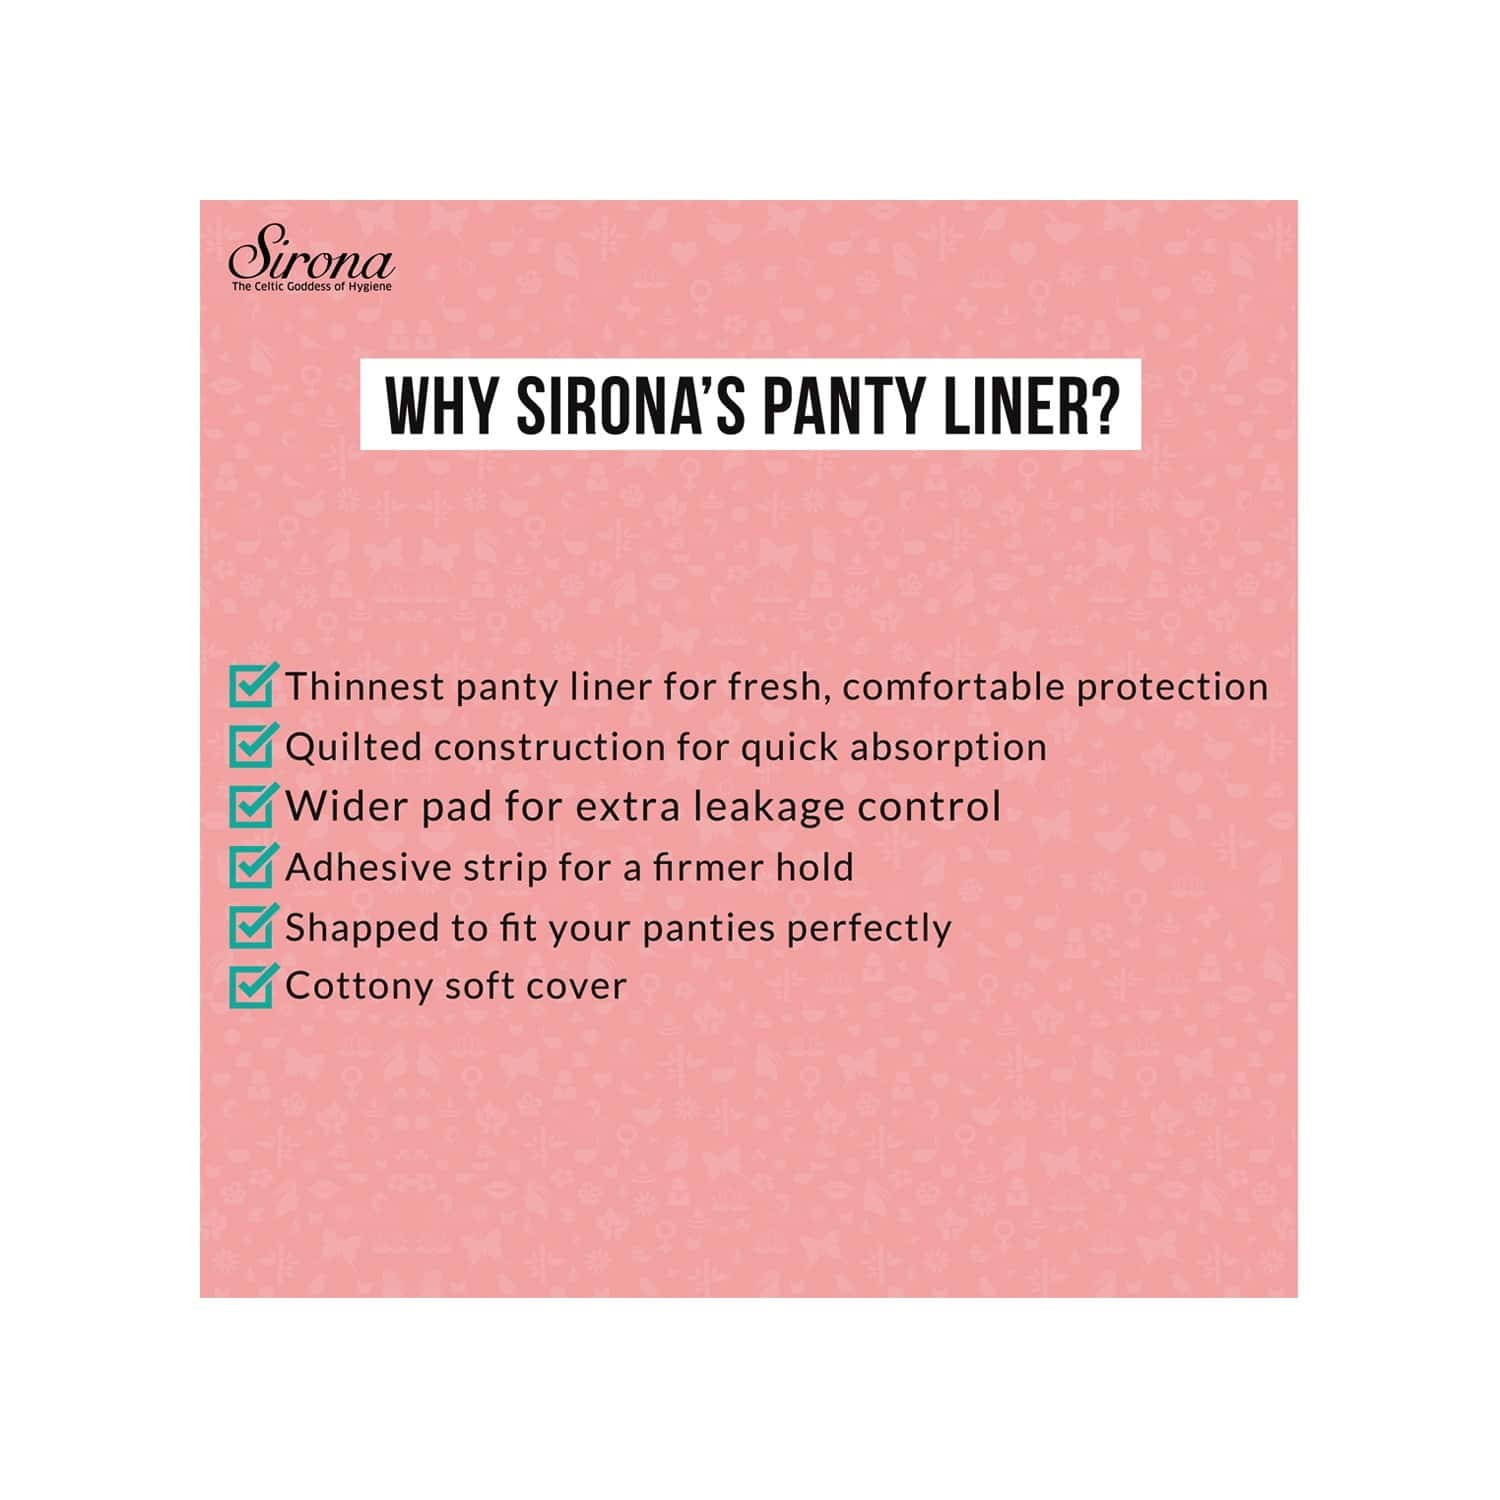 Sirona Premium Panty Liners 30 Counts - Large